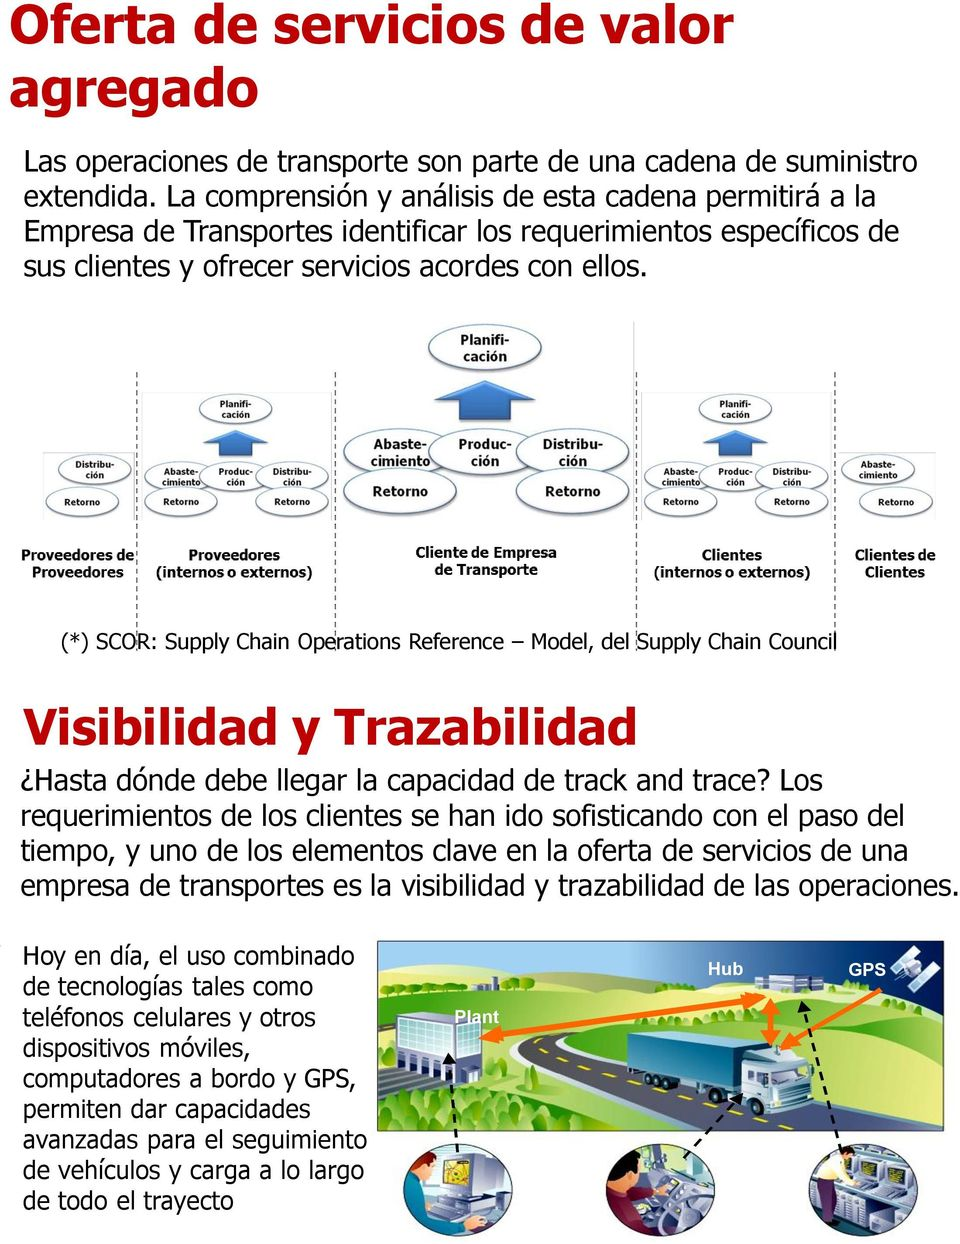 (*) SCOR: Supply Chain Operations Reference Model, del Supply Chain Council Visibilidad y Trazabilidad Hasta dónde debe llegar la capacidad de track and trace?